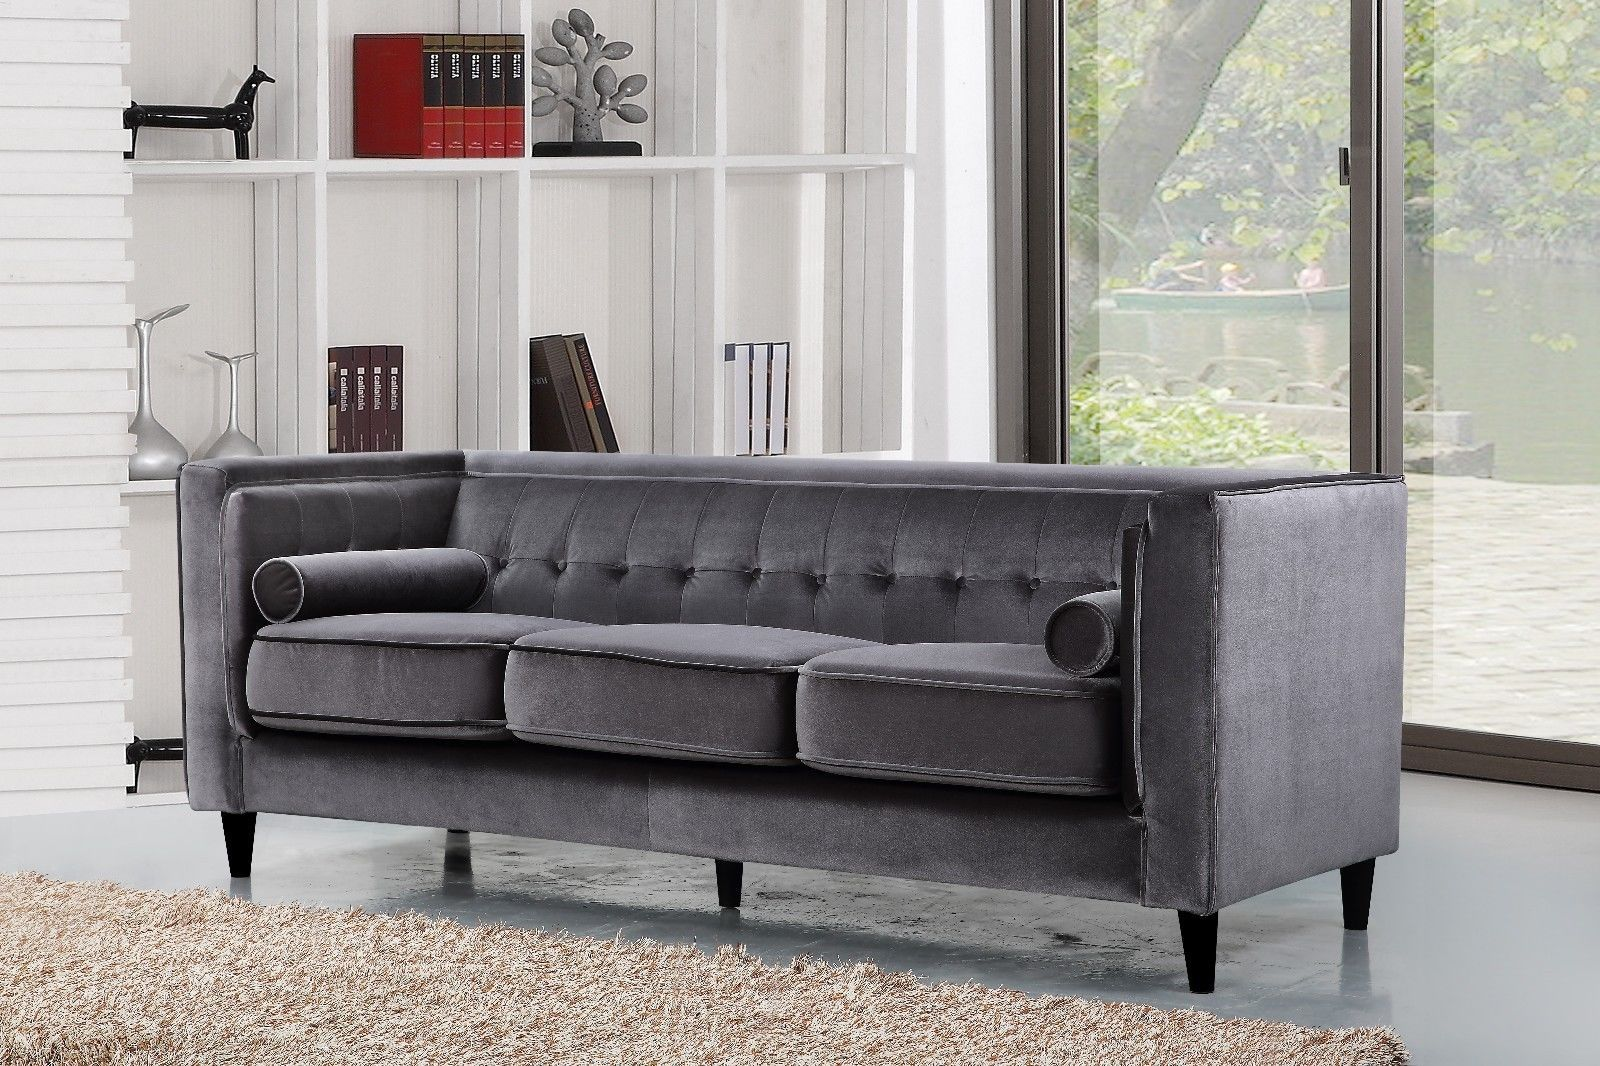 Meridian 642 Taylor Living Room Set 3pcs in Grey Velvet Contemporary Style